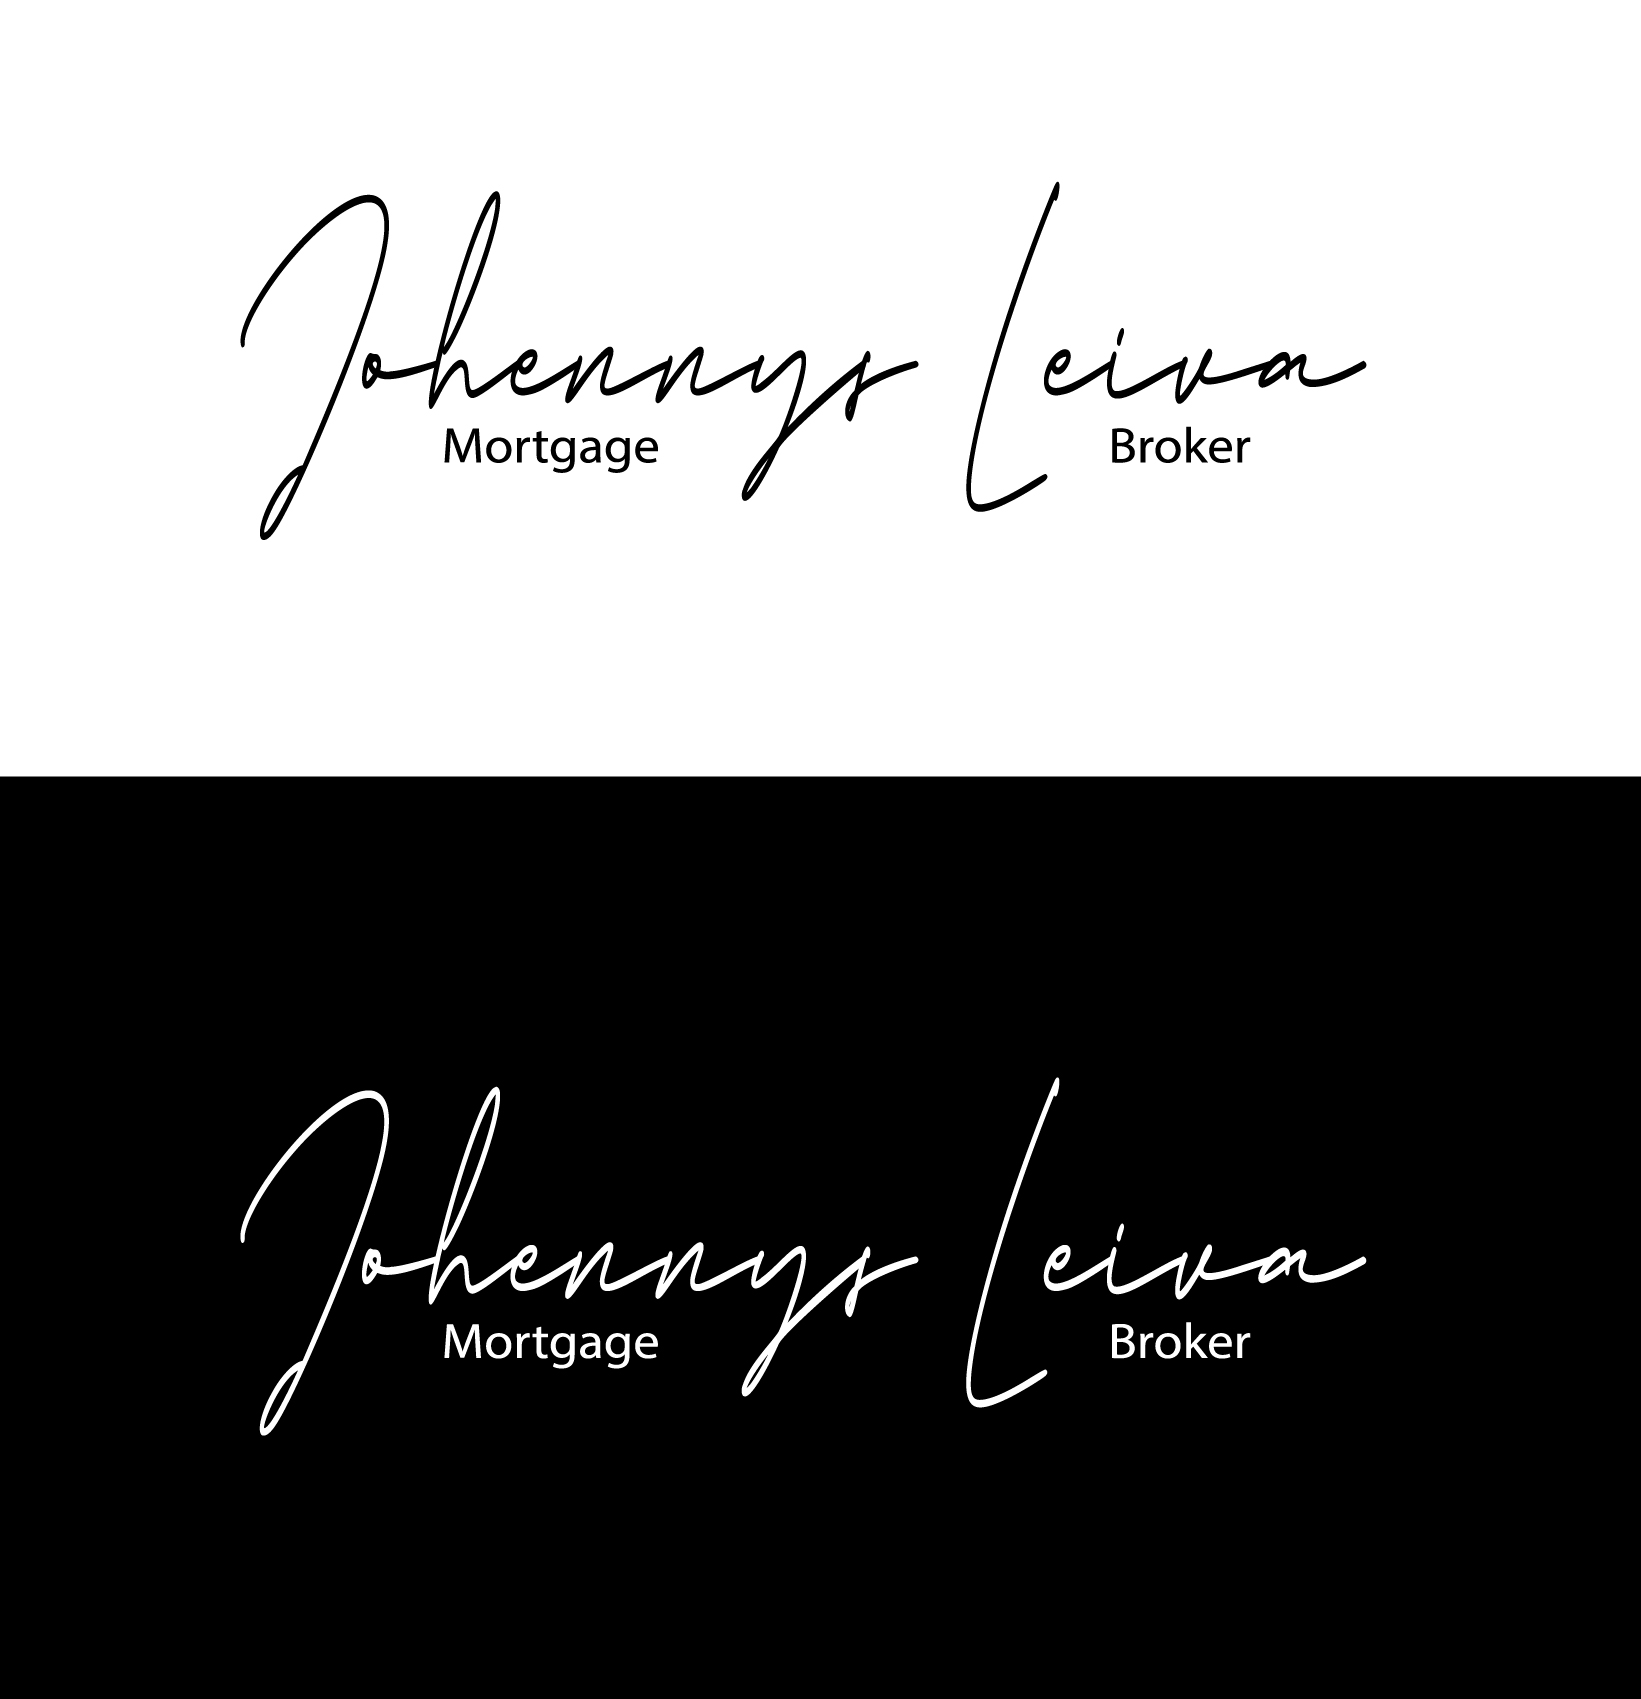 I will design scripted or luxury calligraphy signature logo